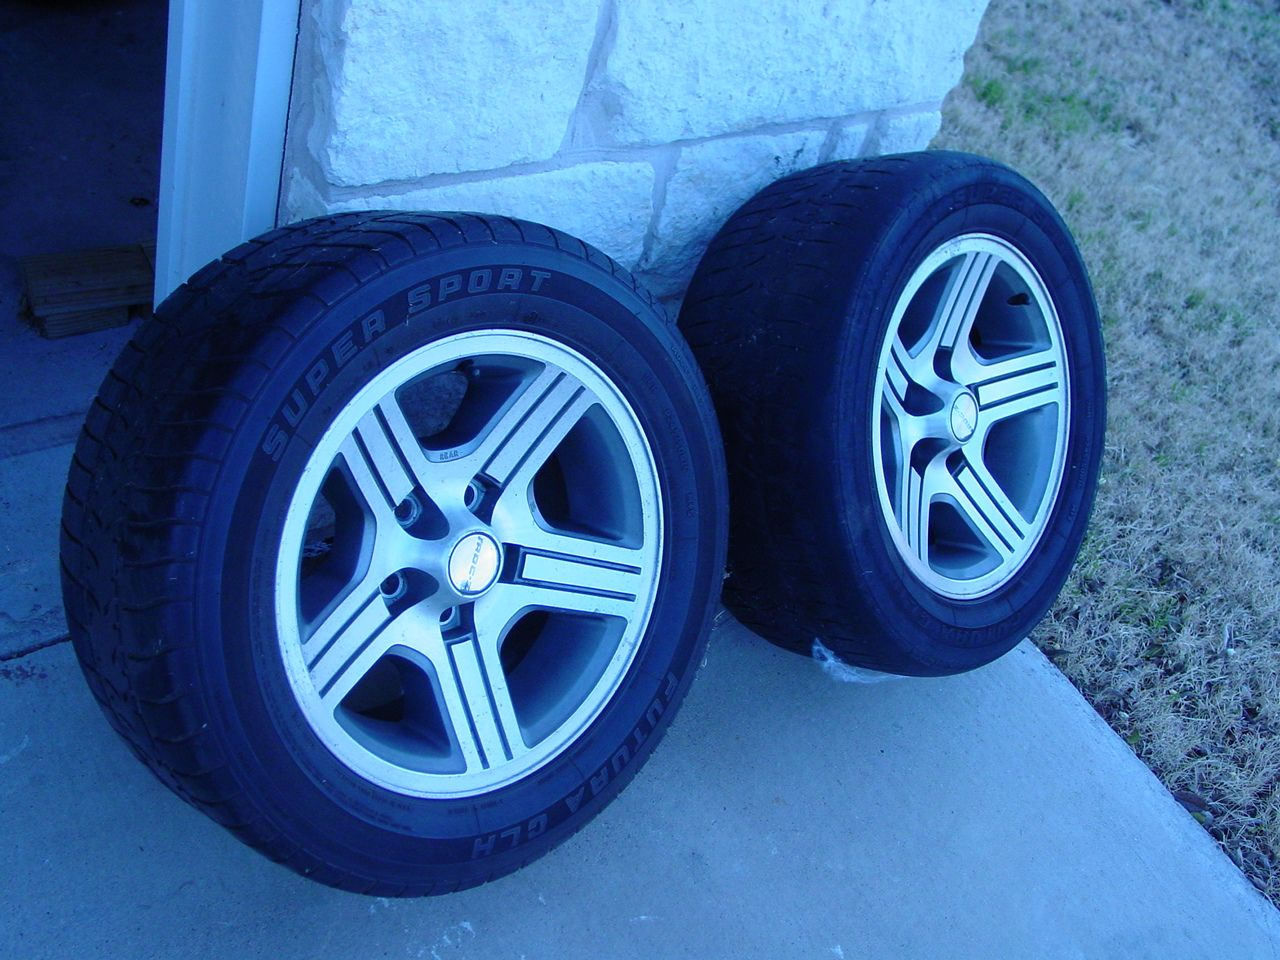 Used Camaro Iroc Wheels For Sale Autos Post Upcomingcarshq Com